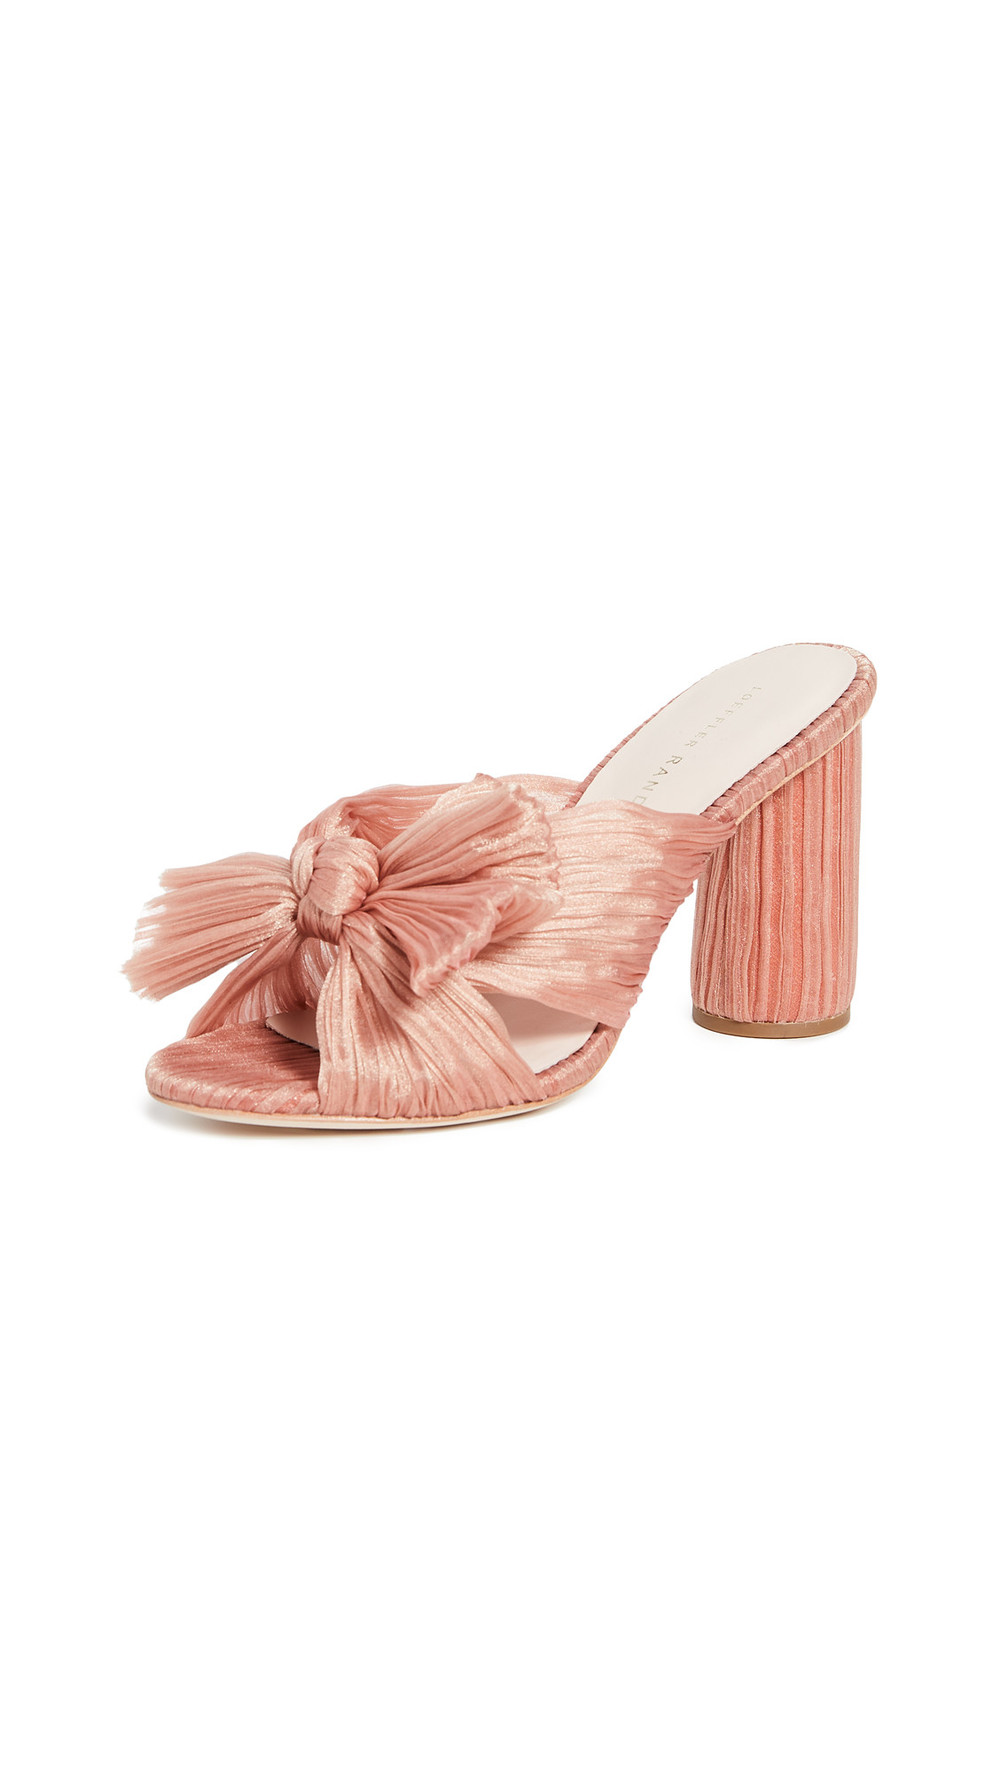 Loeffler Randall Penny Knot Mules in pink